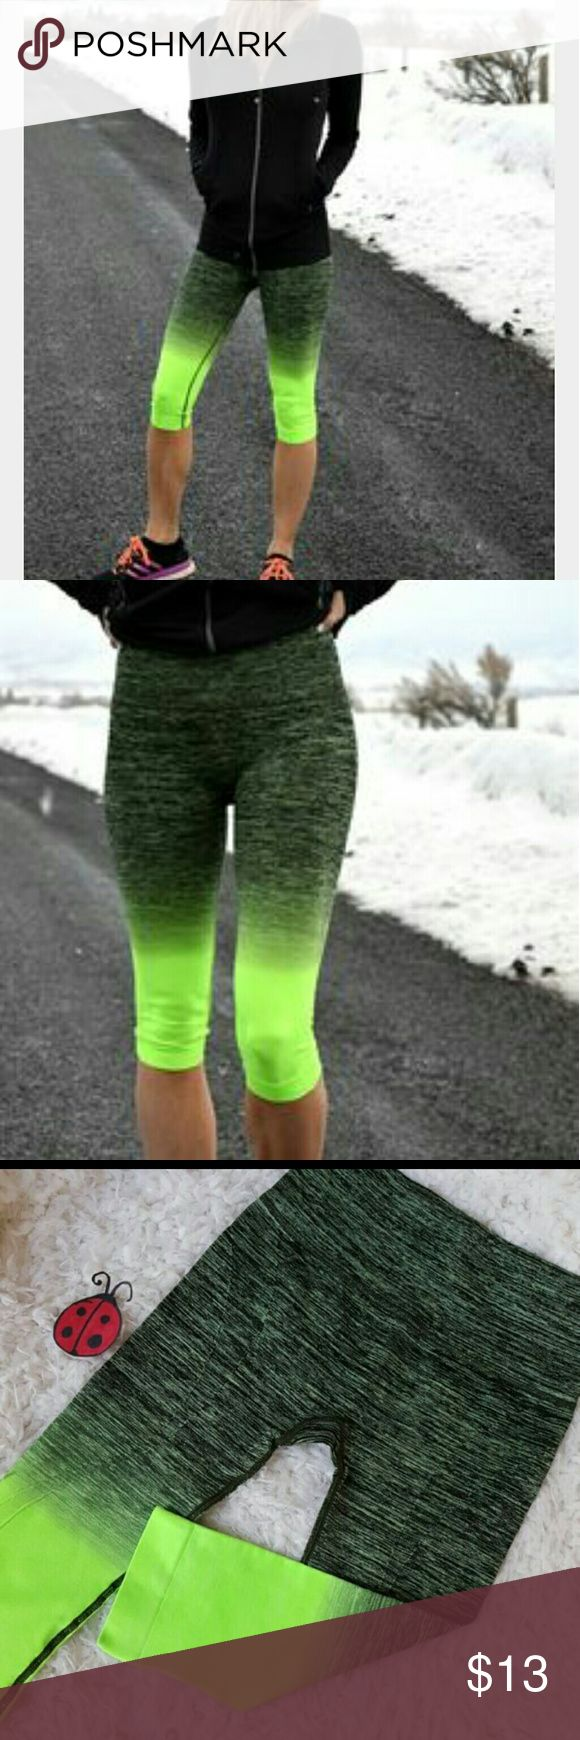 Sale black green ombre yoga workout leggings Sale sale sale !!!!! Black neon green  ombre capri  yoga workout leggings in a size small,with four way stretch, wicking, and flat seems for extra comfort.  Perfect for the gym, yoga, running , weight lifting or every day wear! 88% nylon,12% spandex.  leggings run on the smaller side please order a size up  Also available in s, m , l , xl Pants Leggings